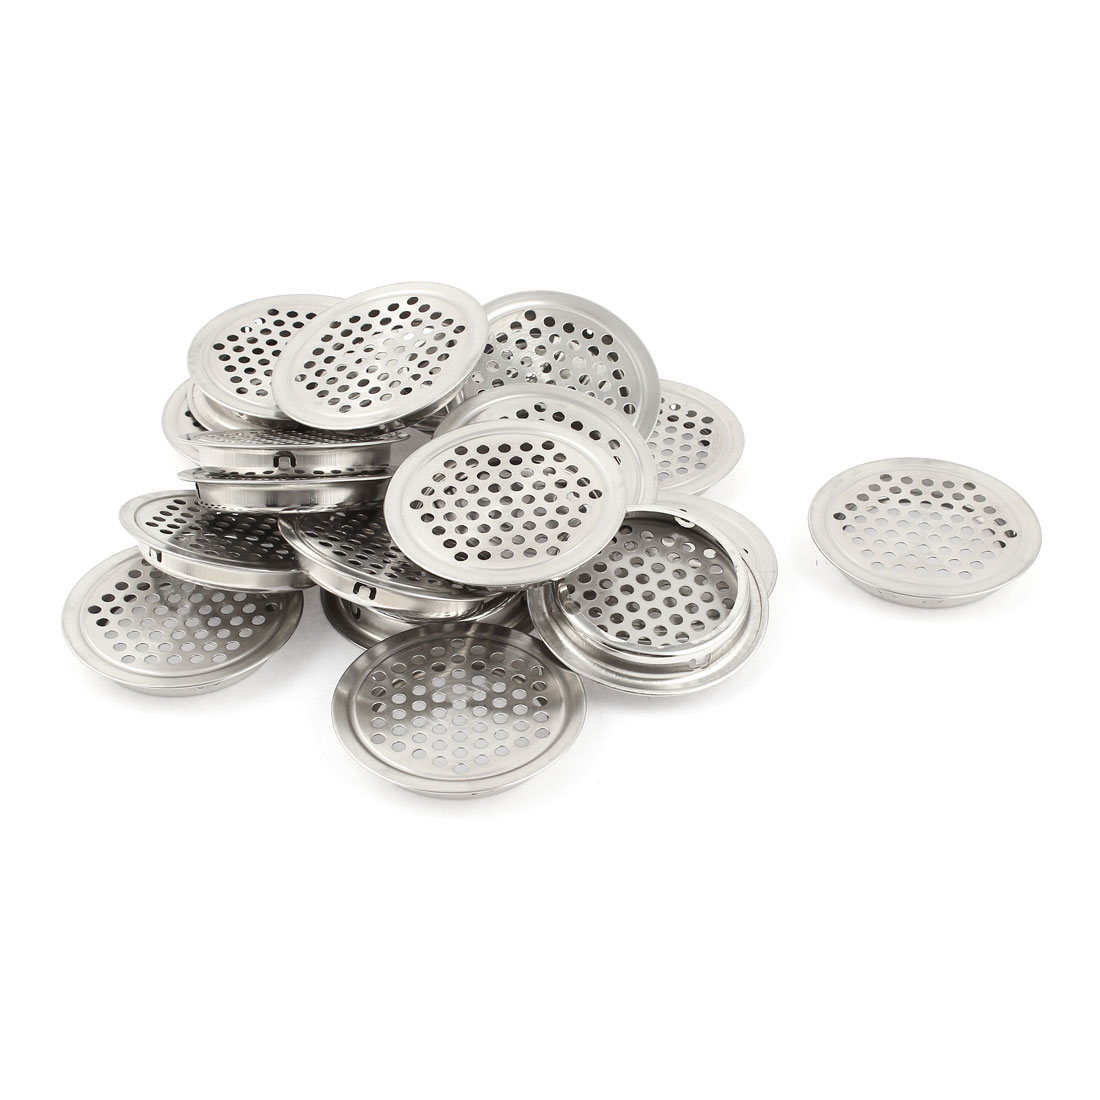 20 Pcs 53mm Bottom Dia Stainless Steel Round Mesh Hole Air Vent Louver